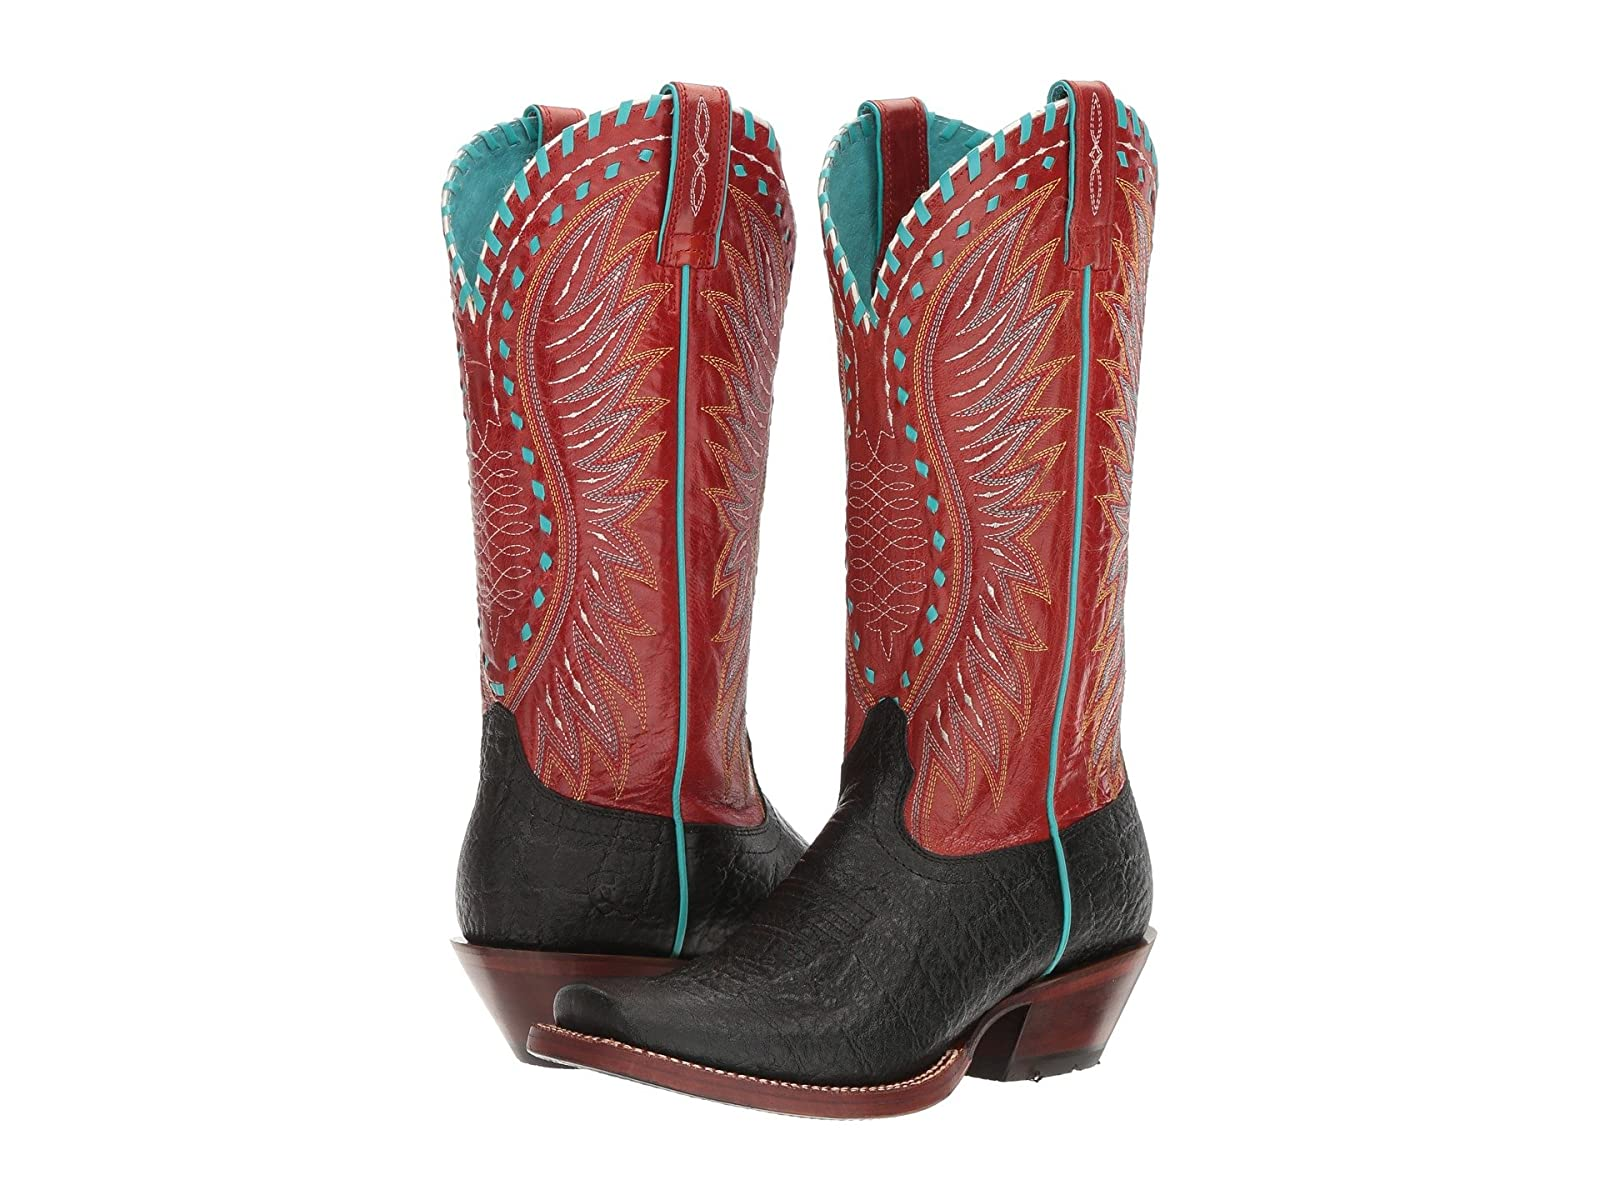 Ariat DerbyCheap and distinctive eye-catching shoes